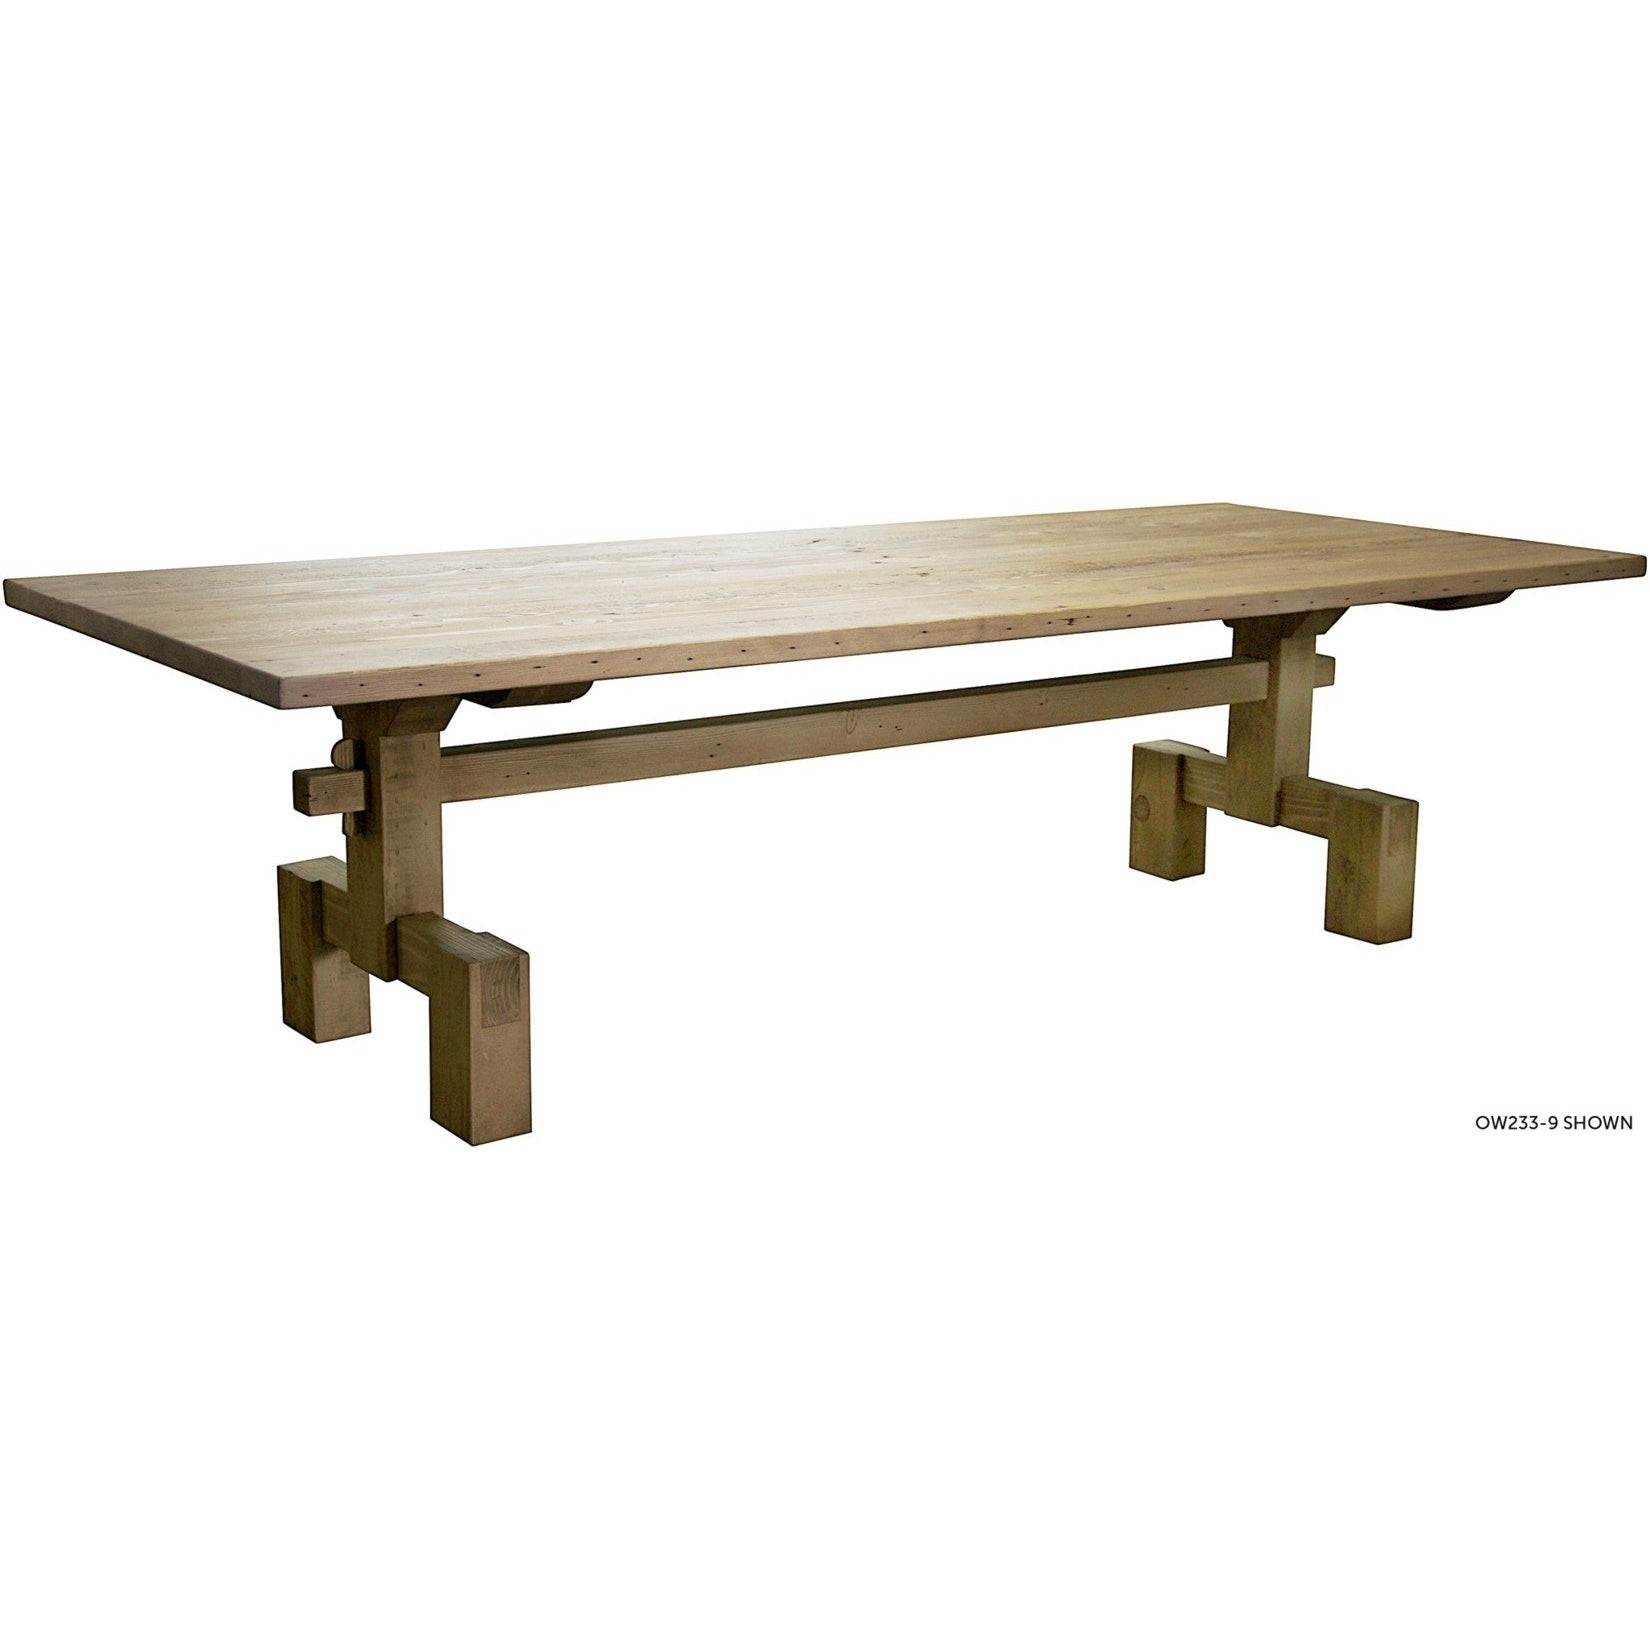 "CFC Furniture Reclaimed Lumber Emilia Dining Table, 96""-CFC Furniture-Blue Hand Home"